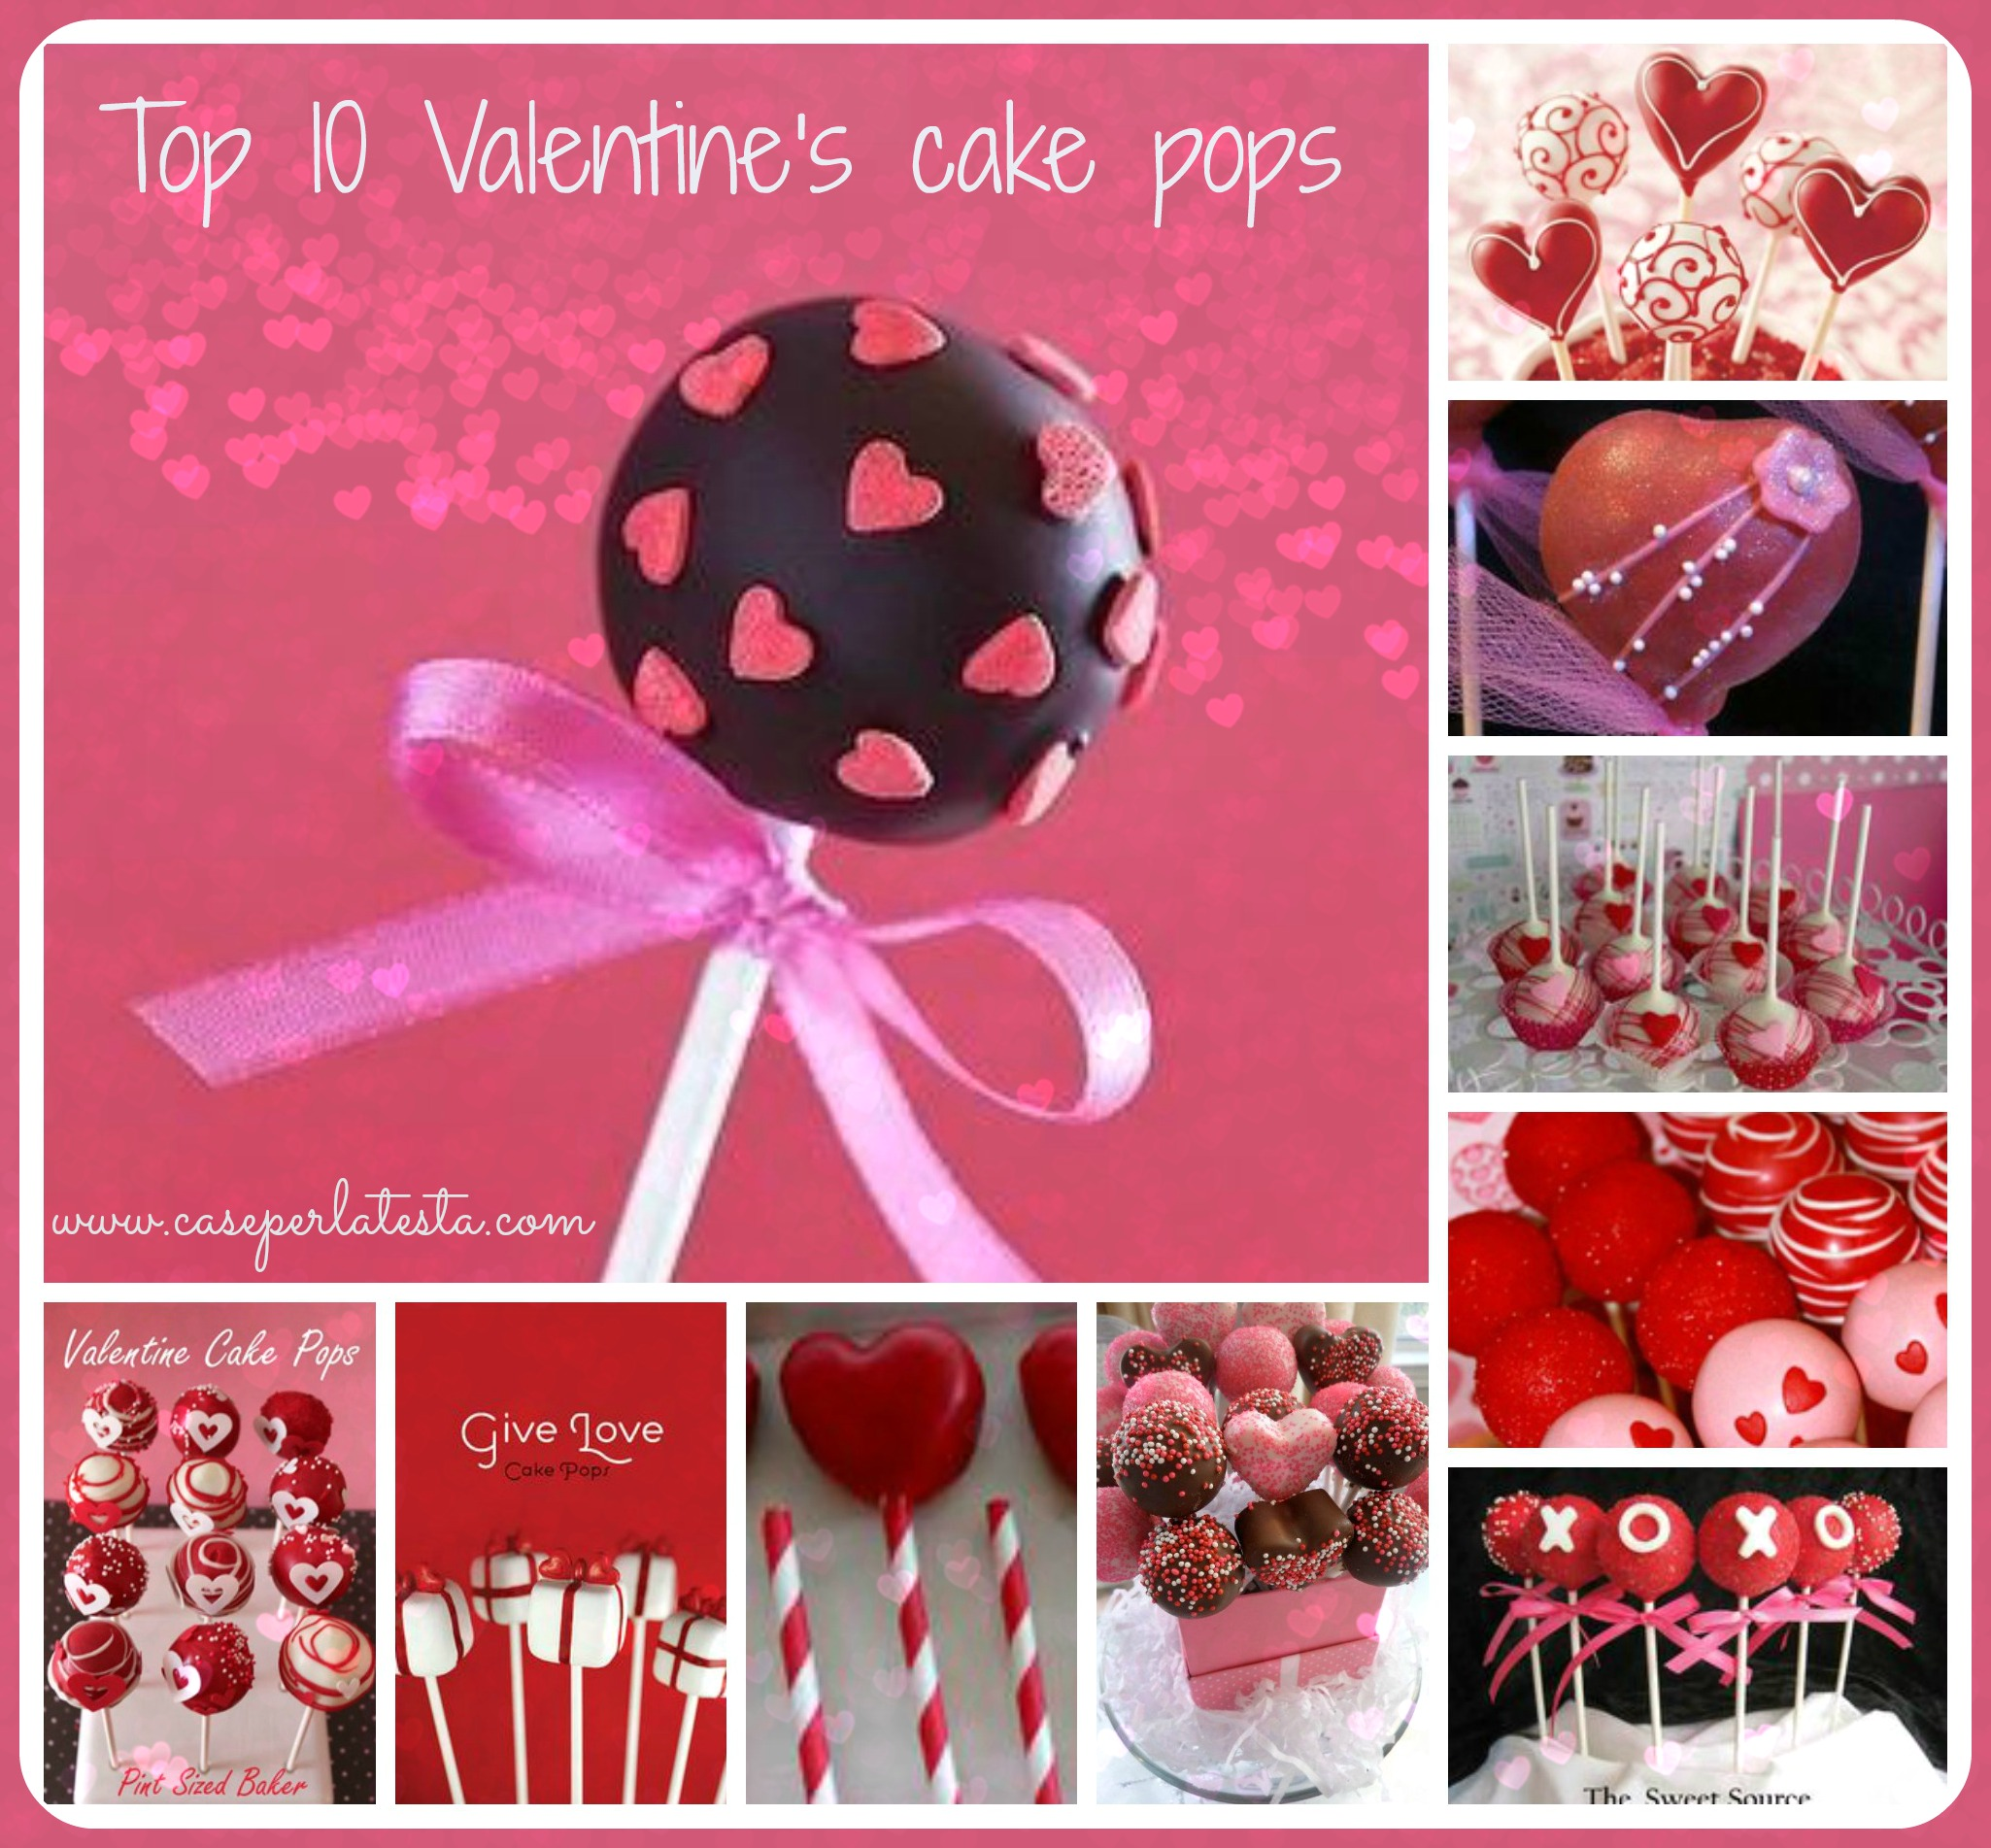 Top ten cake pops di San Valentino * Top ten Valentine's cake pops